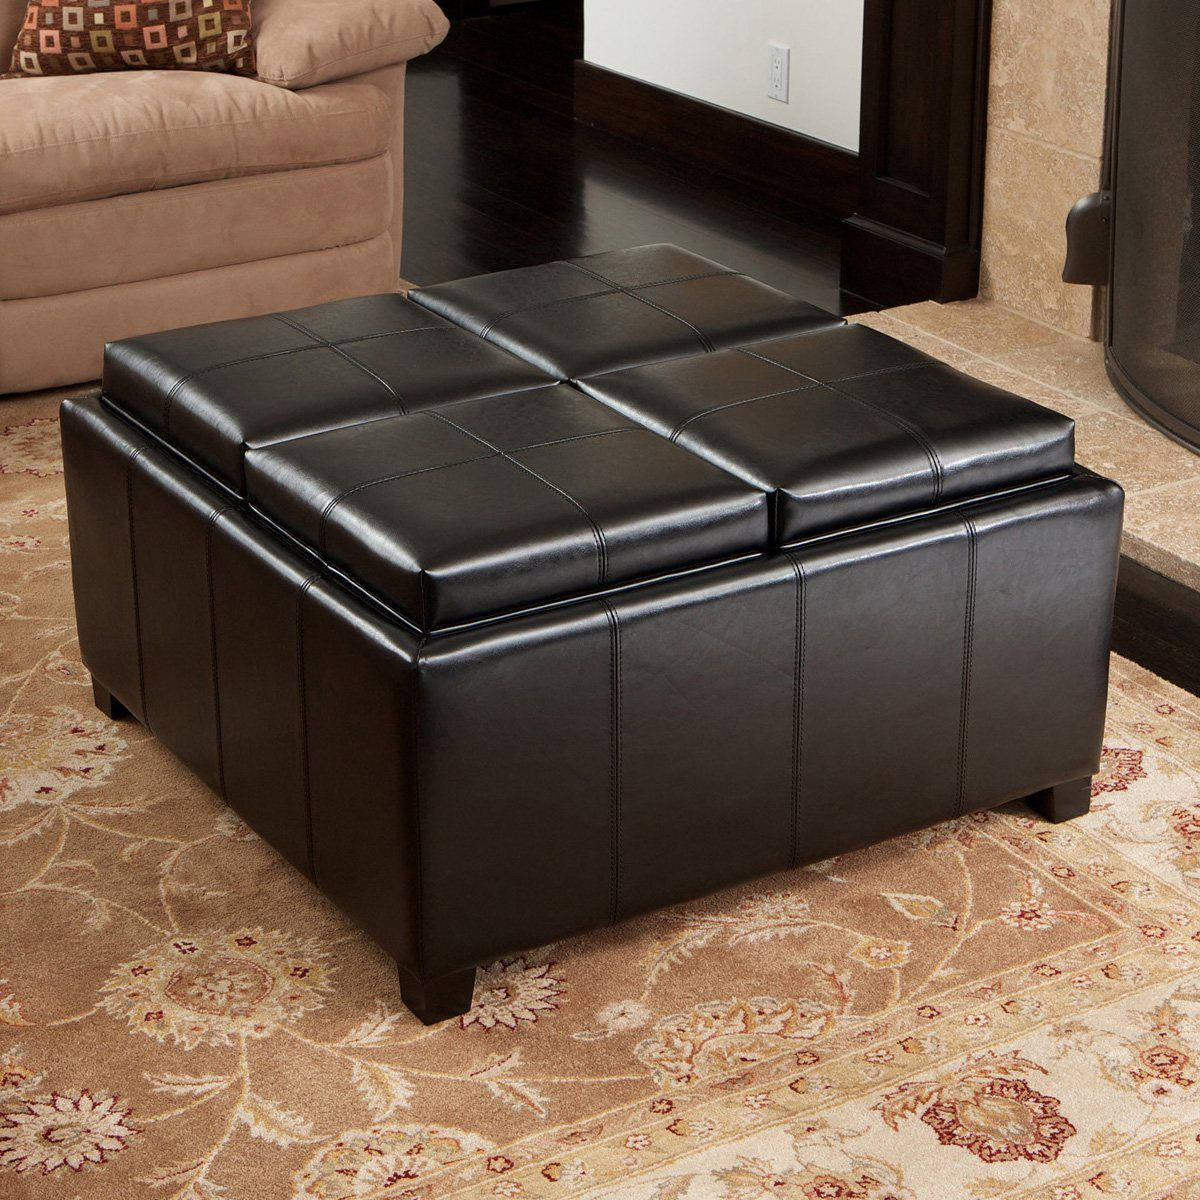 Best Selling Home Decor Dartmouth 4 Section Storage Ottoman